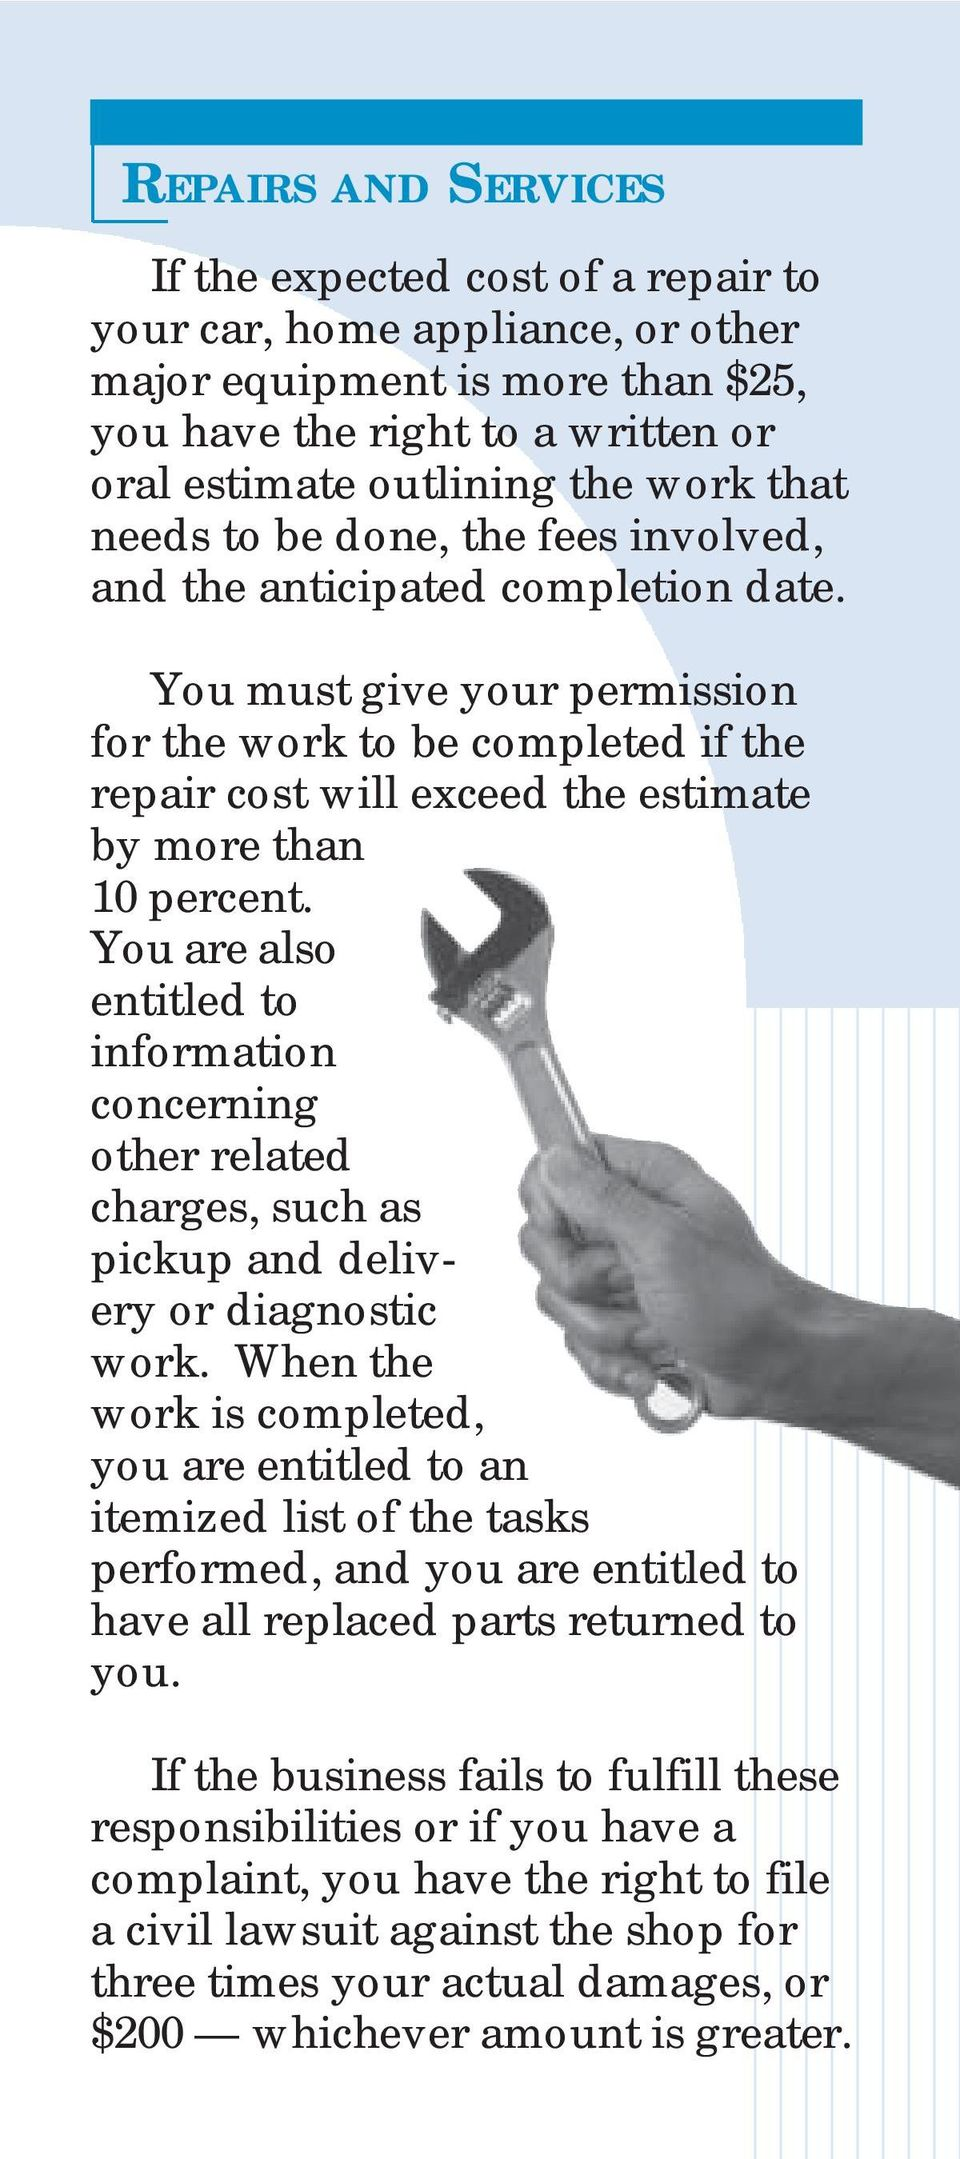 You must give your permission for the work to be completed if the repair cost will exceed the estimate by more than 10 percent.